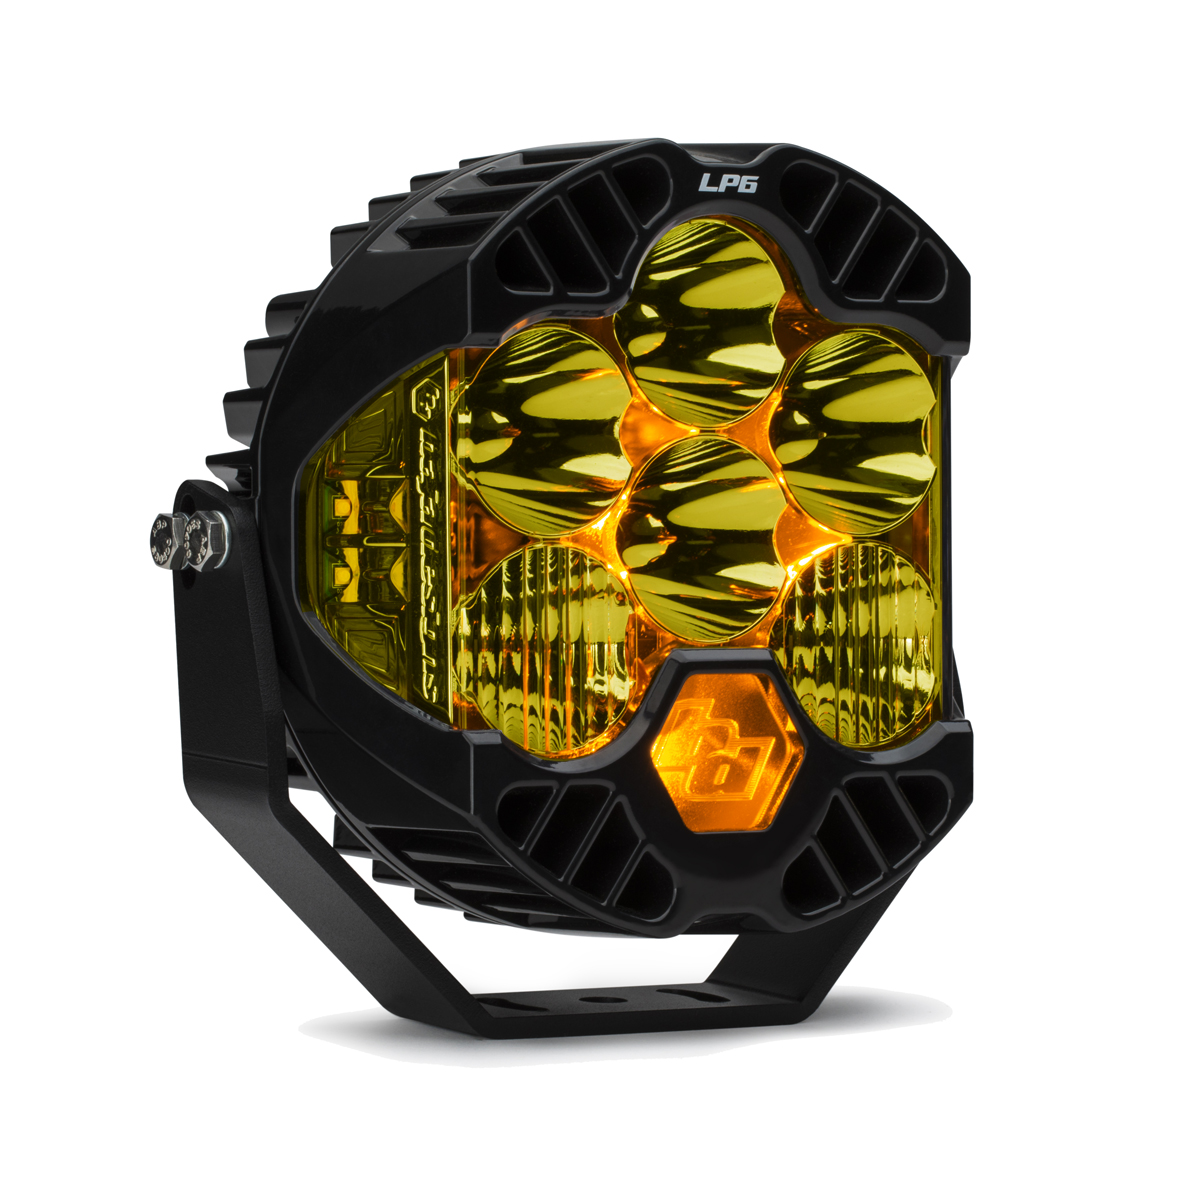 Baja Designs LP6 Pro LED Driving Combo Light, Amber